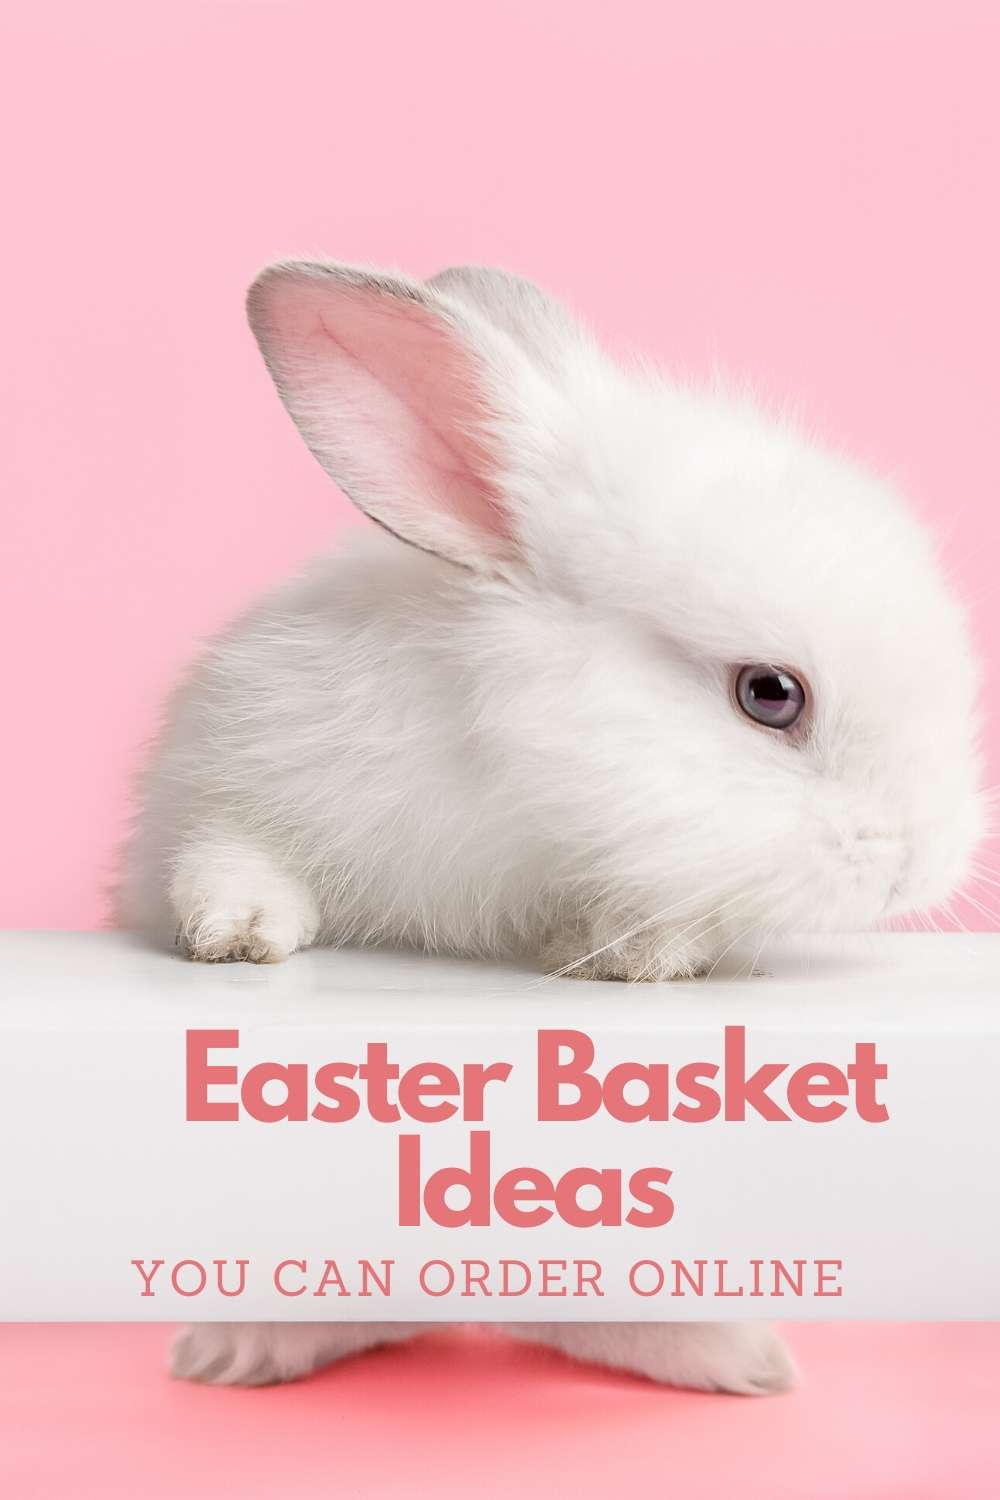 We've got less than two weeks till Easter, if you plan to gather basket items and not leave the house it's best to start now.  Here are 20 great Easter Basket items you can order online!